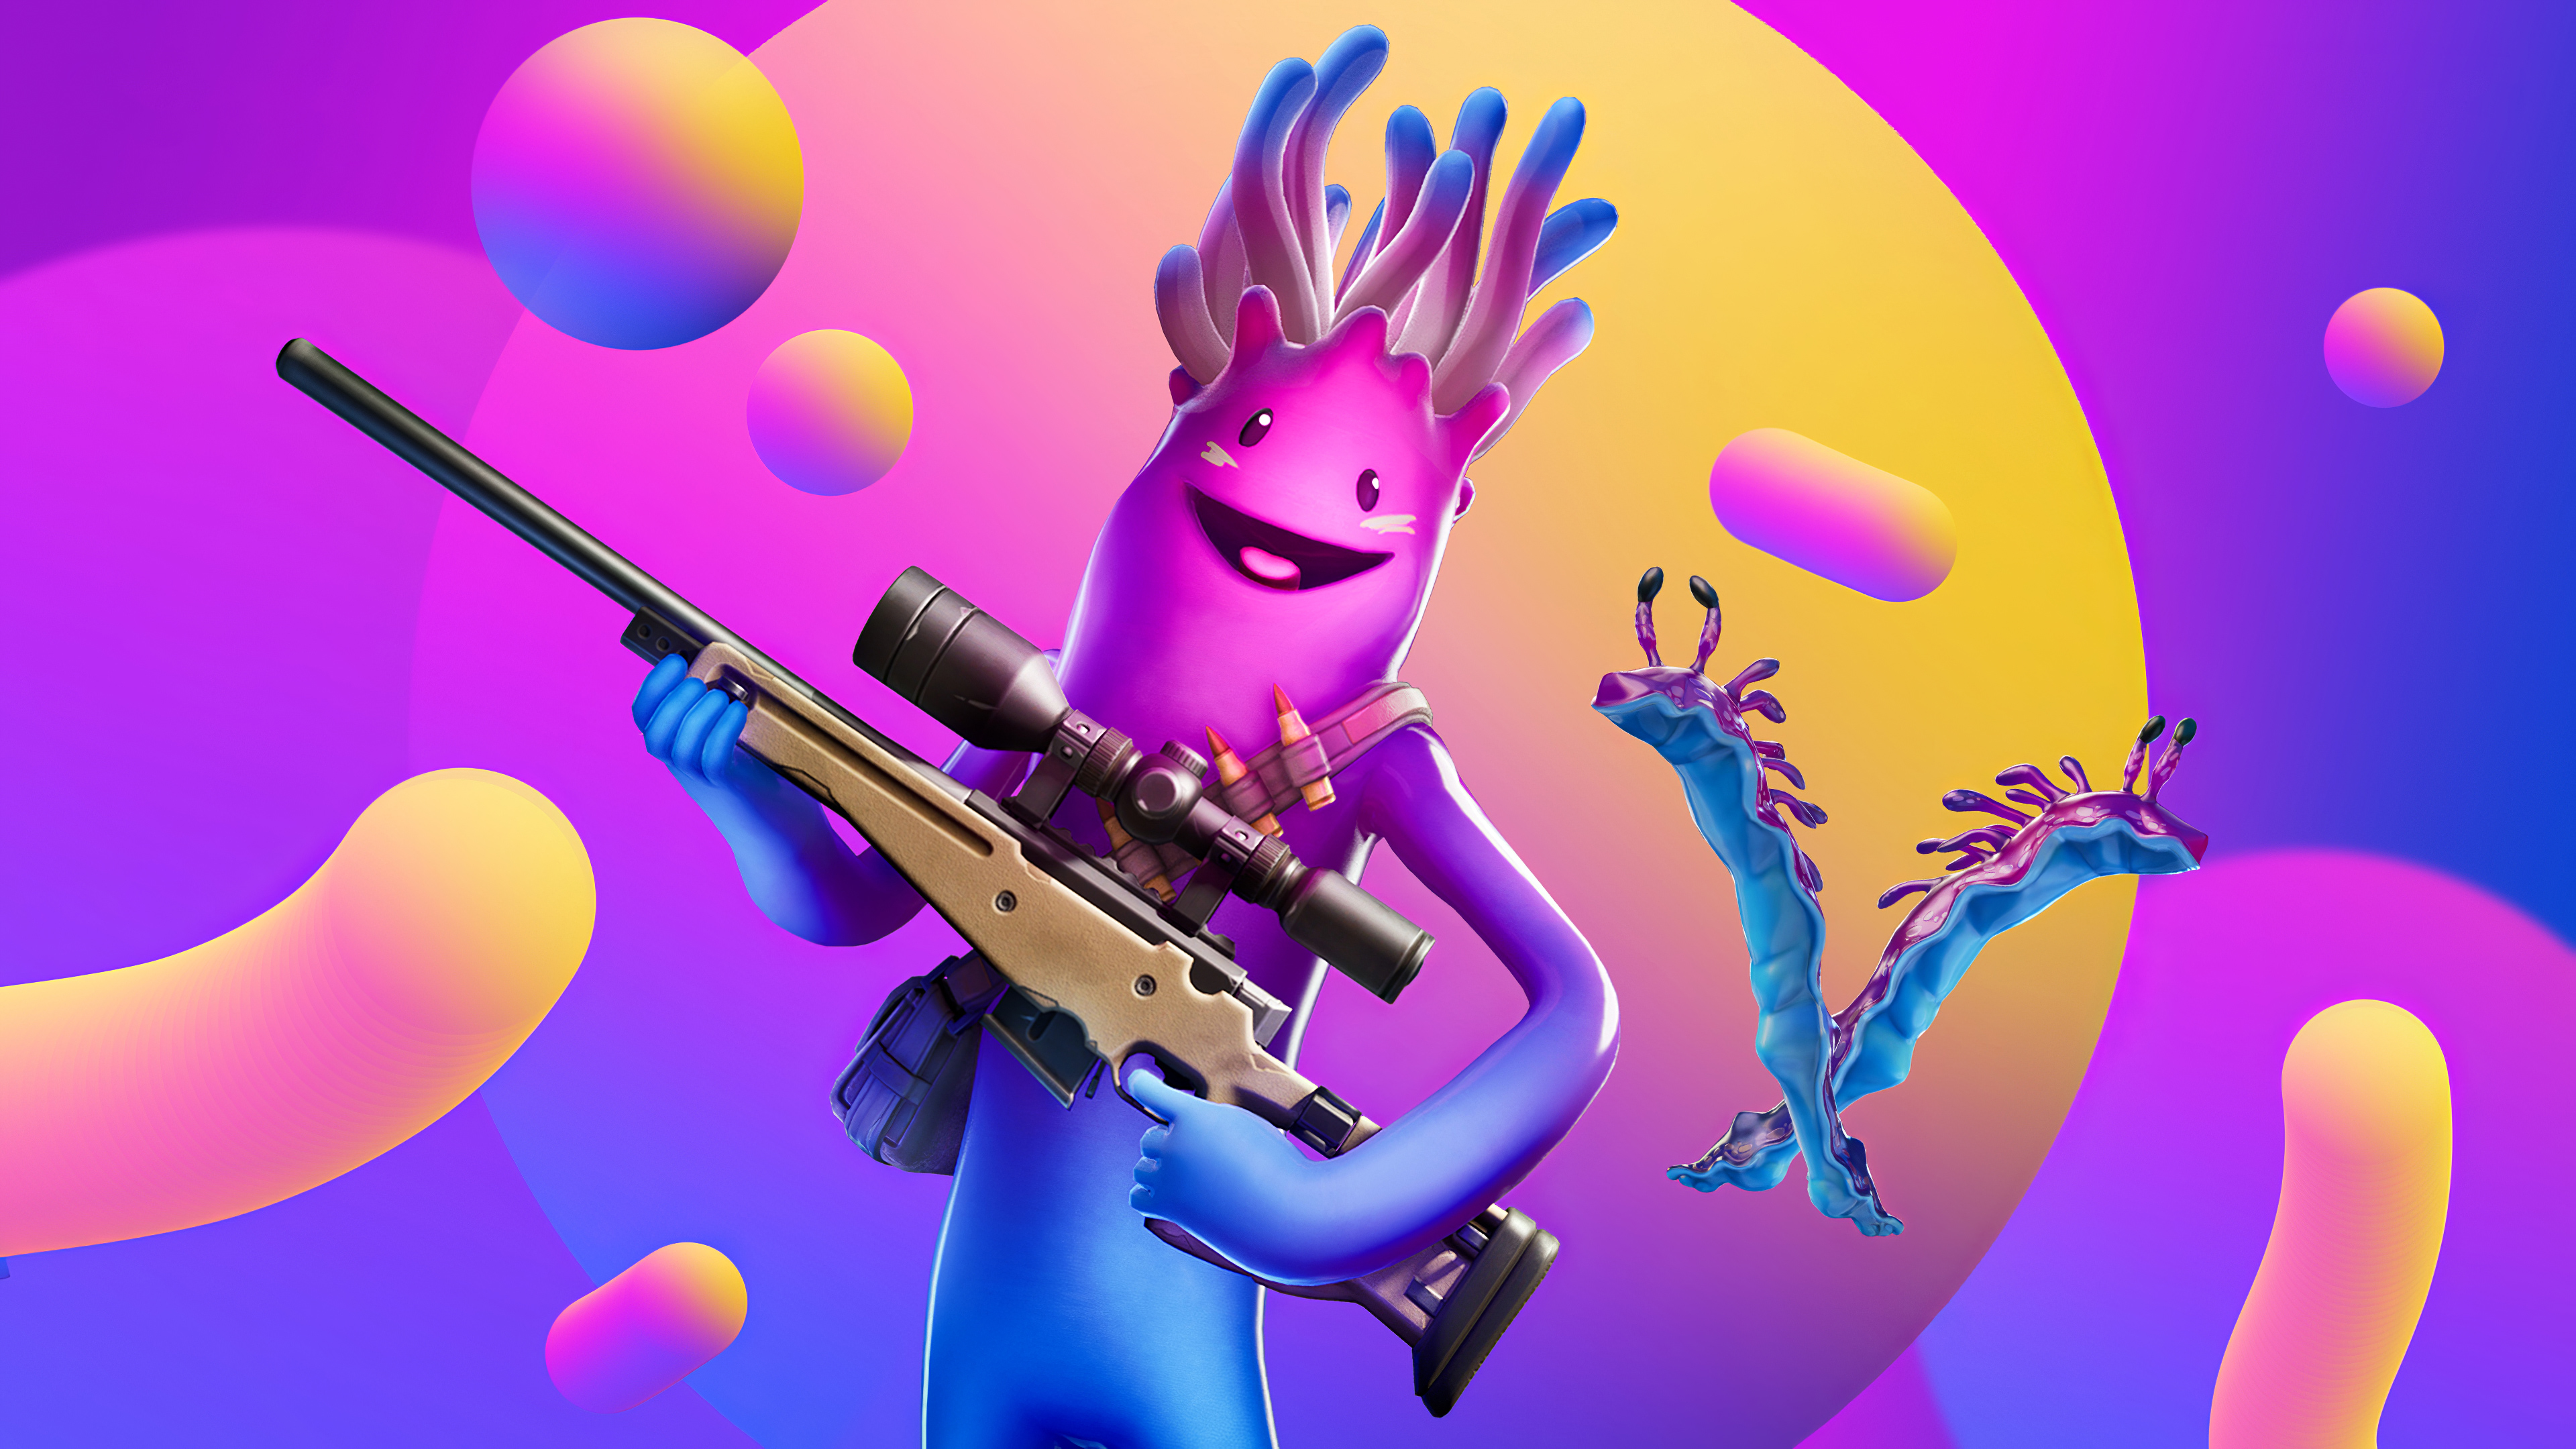 jellie fornite outfit 1581276395 - Jellie Fornite Outfit - Jellie Fornite Outfit wallpapers, Jellie Fornite Outfit 4k wallpapers